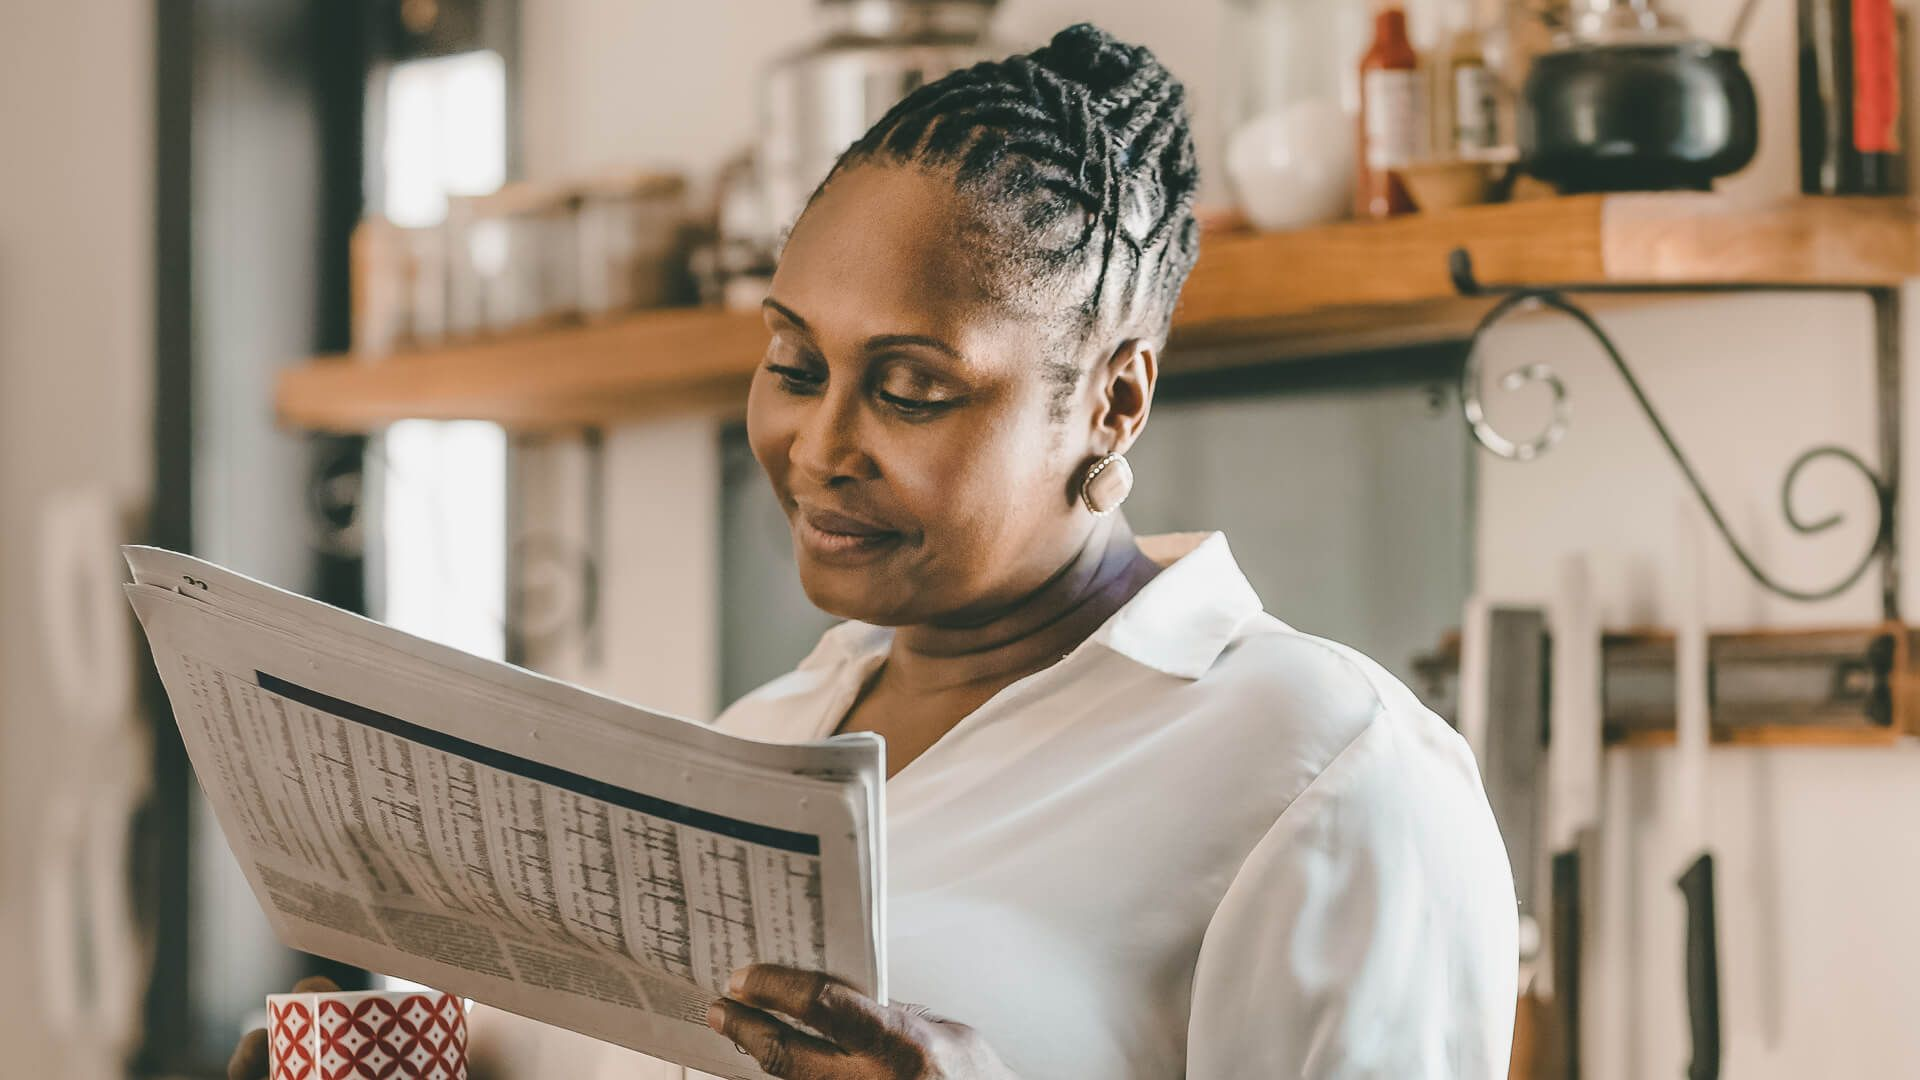 Smiling African American woman drinking a cup of coffee and reading the newspaper while standing in her kitchen in the morning.